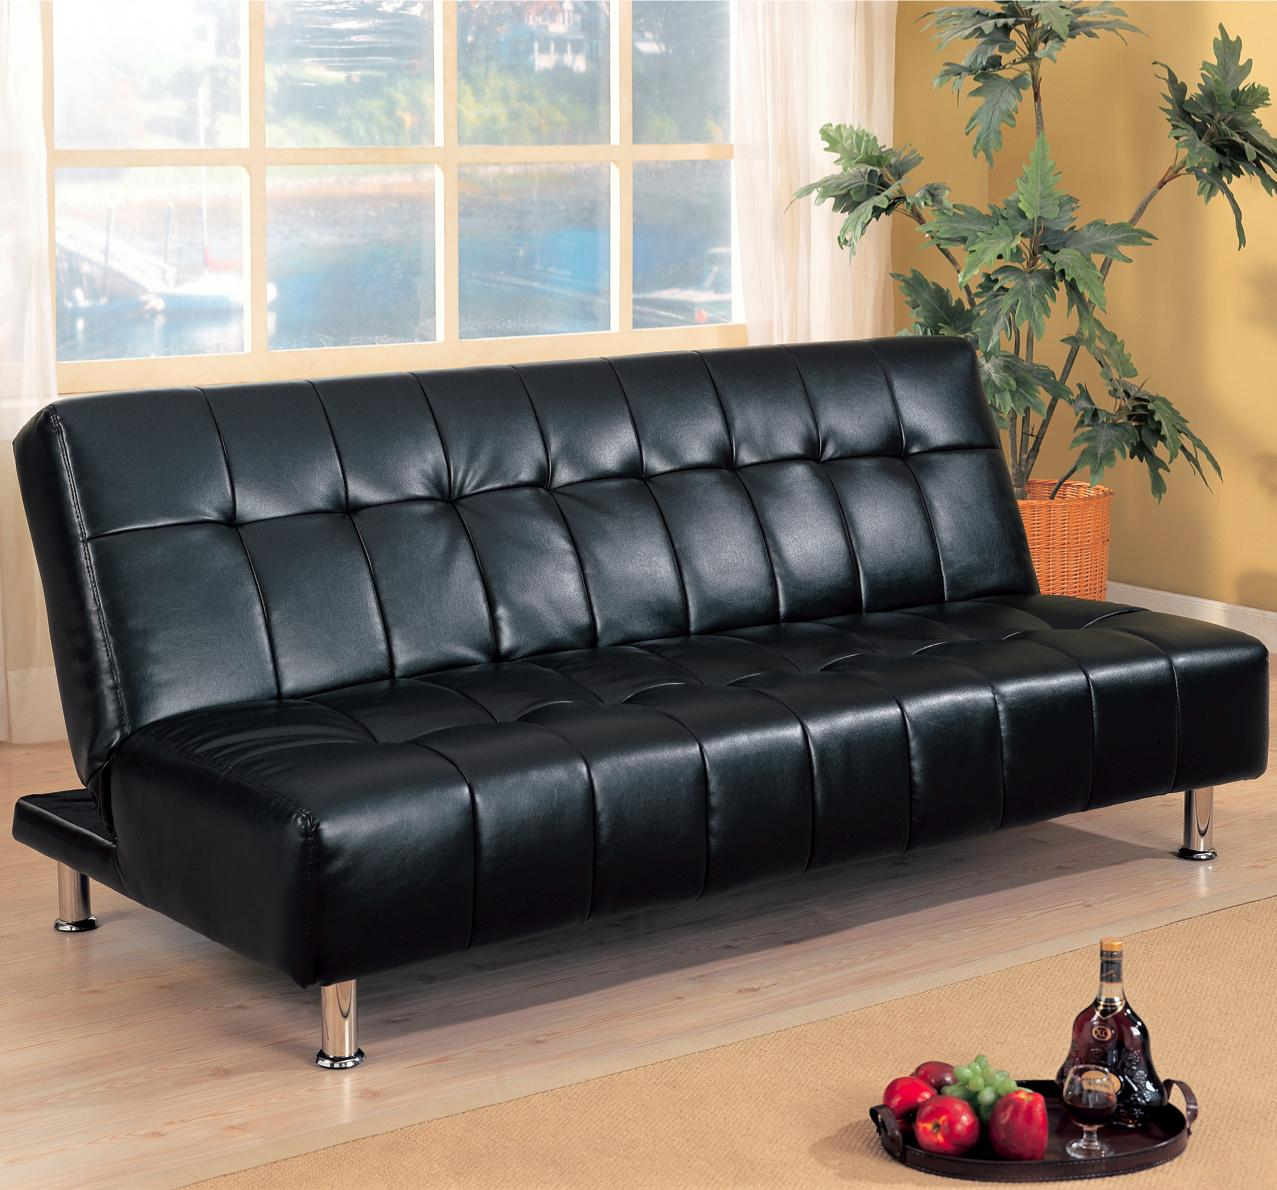 Faux Leather Armless Convertible Sofa Bed